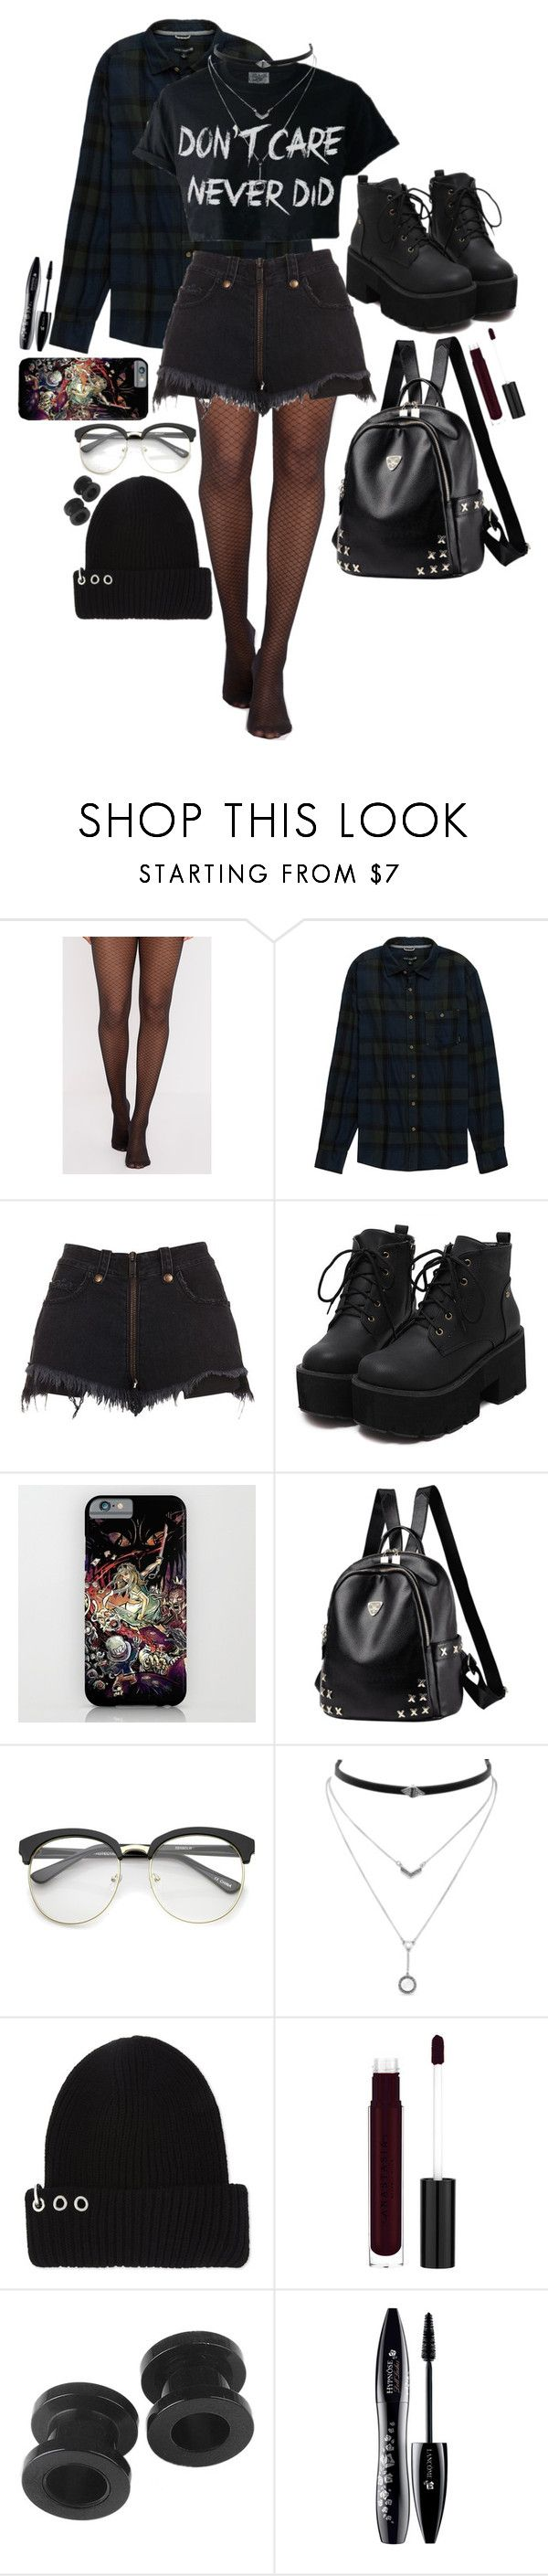 """Happy New Year!⛇"" by twocigarettes ❤ liked on Polyvore featuring Ocean Current, Unravel, ZeroUV, Jessica Simpson, Musium and Lancôme"